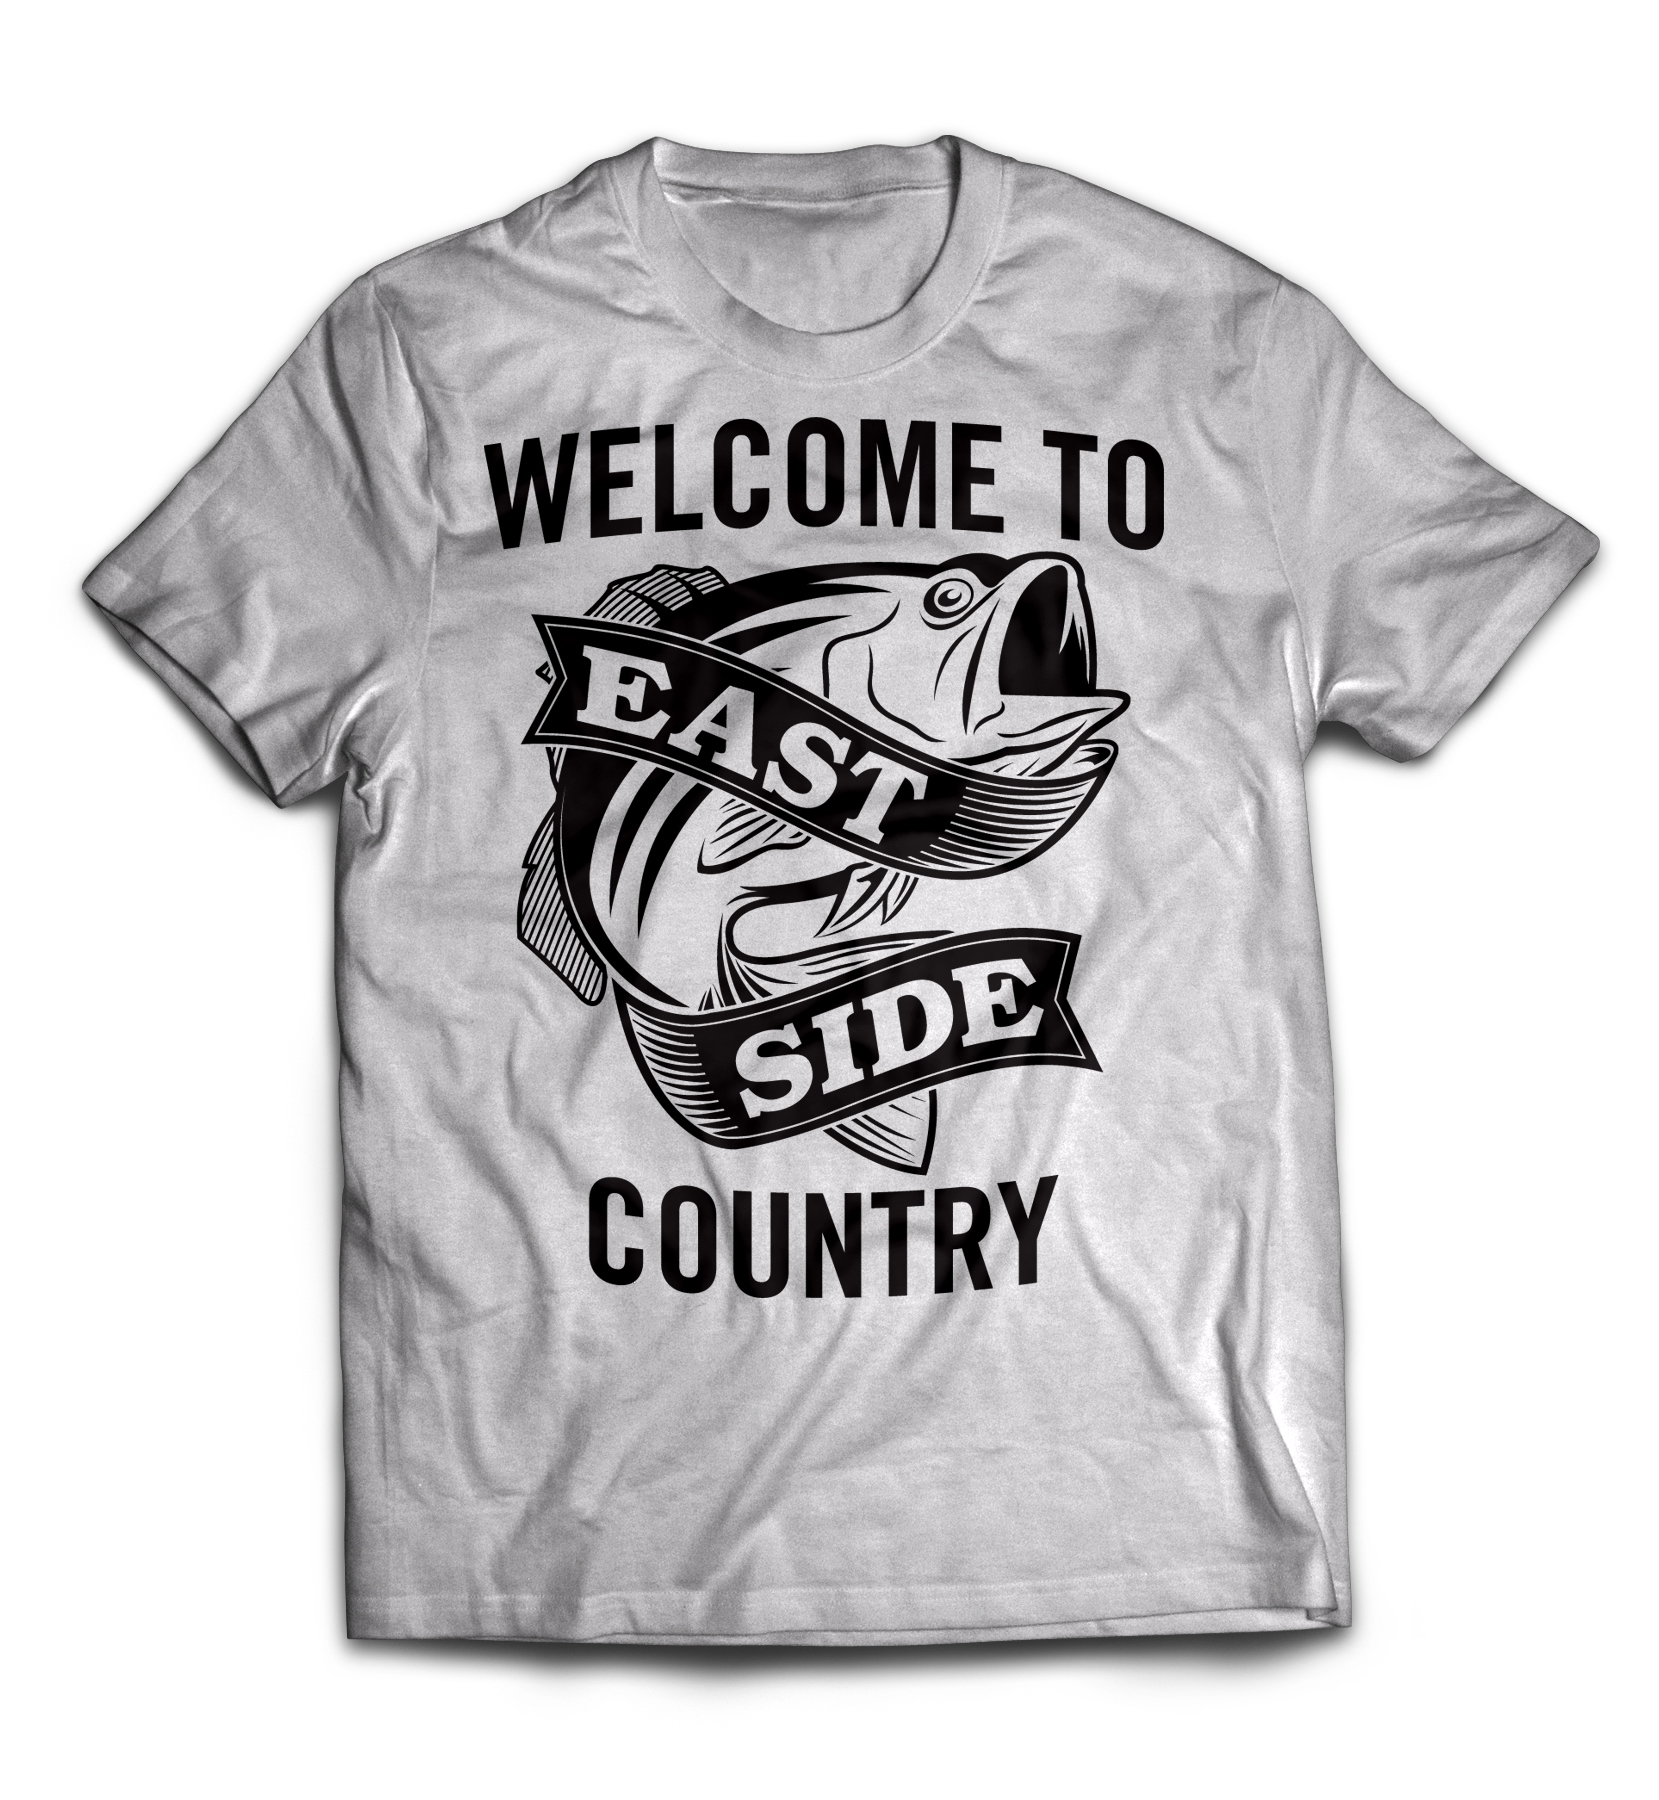 East Side Welcome To East Side Country.jpg